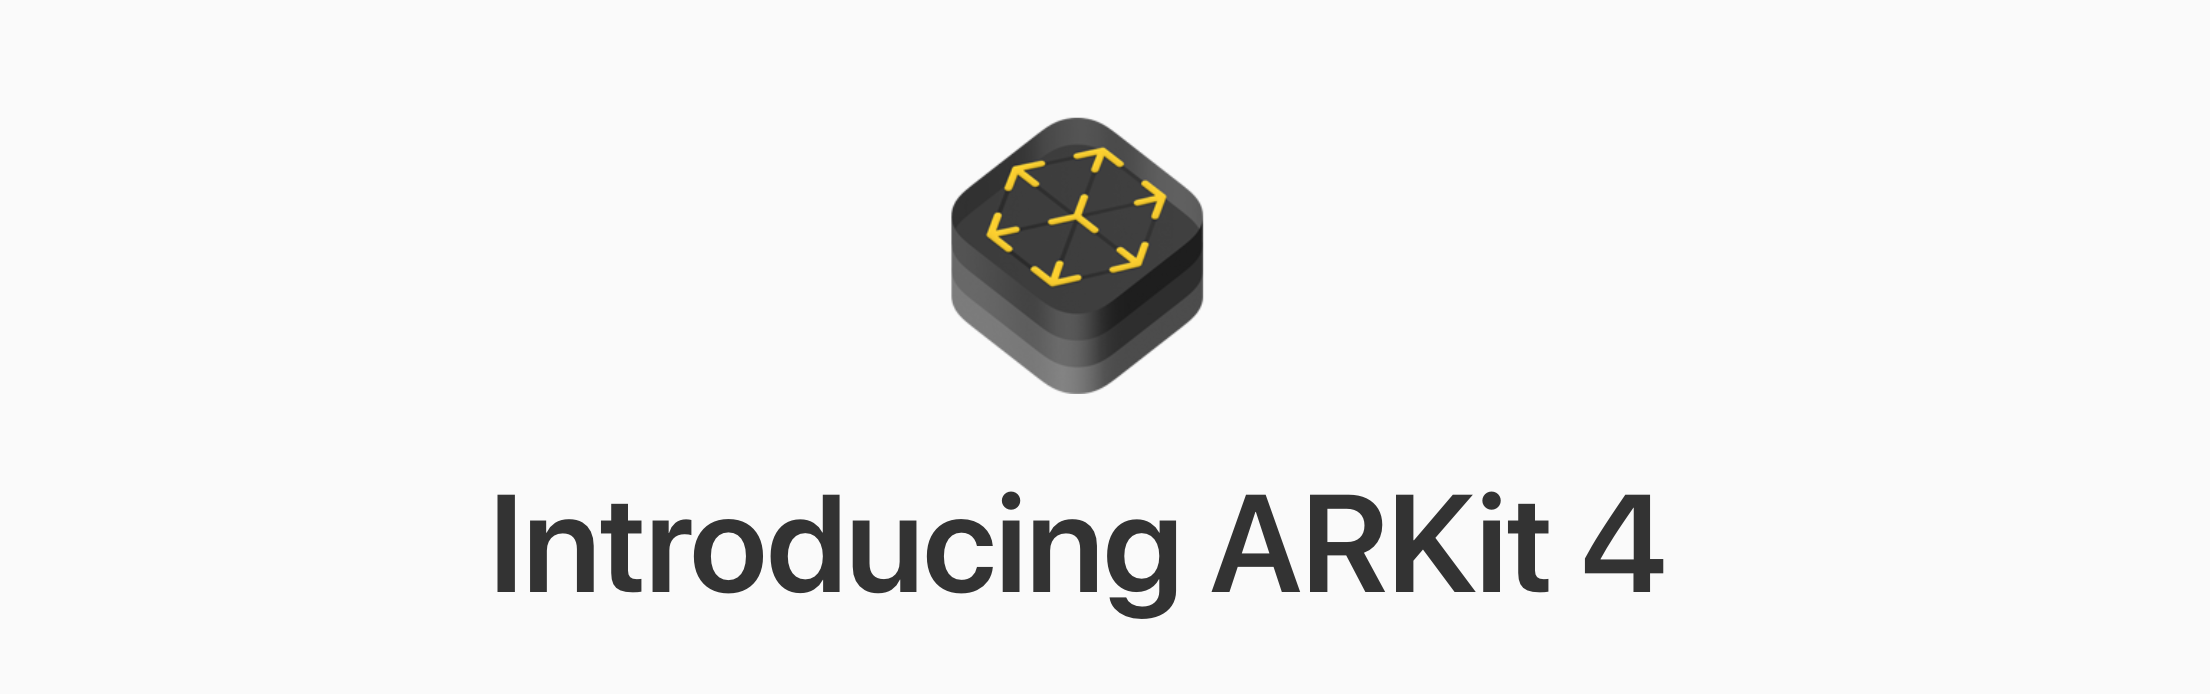 What's New in ARKit 4?